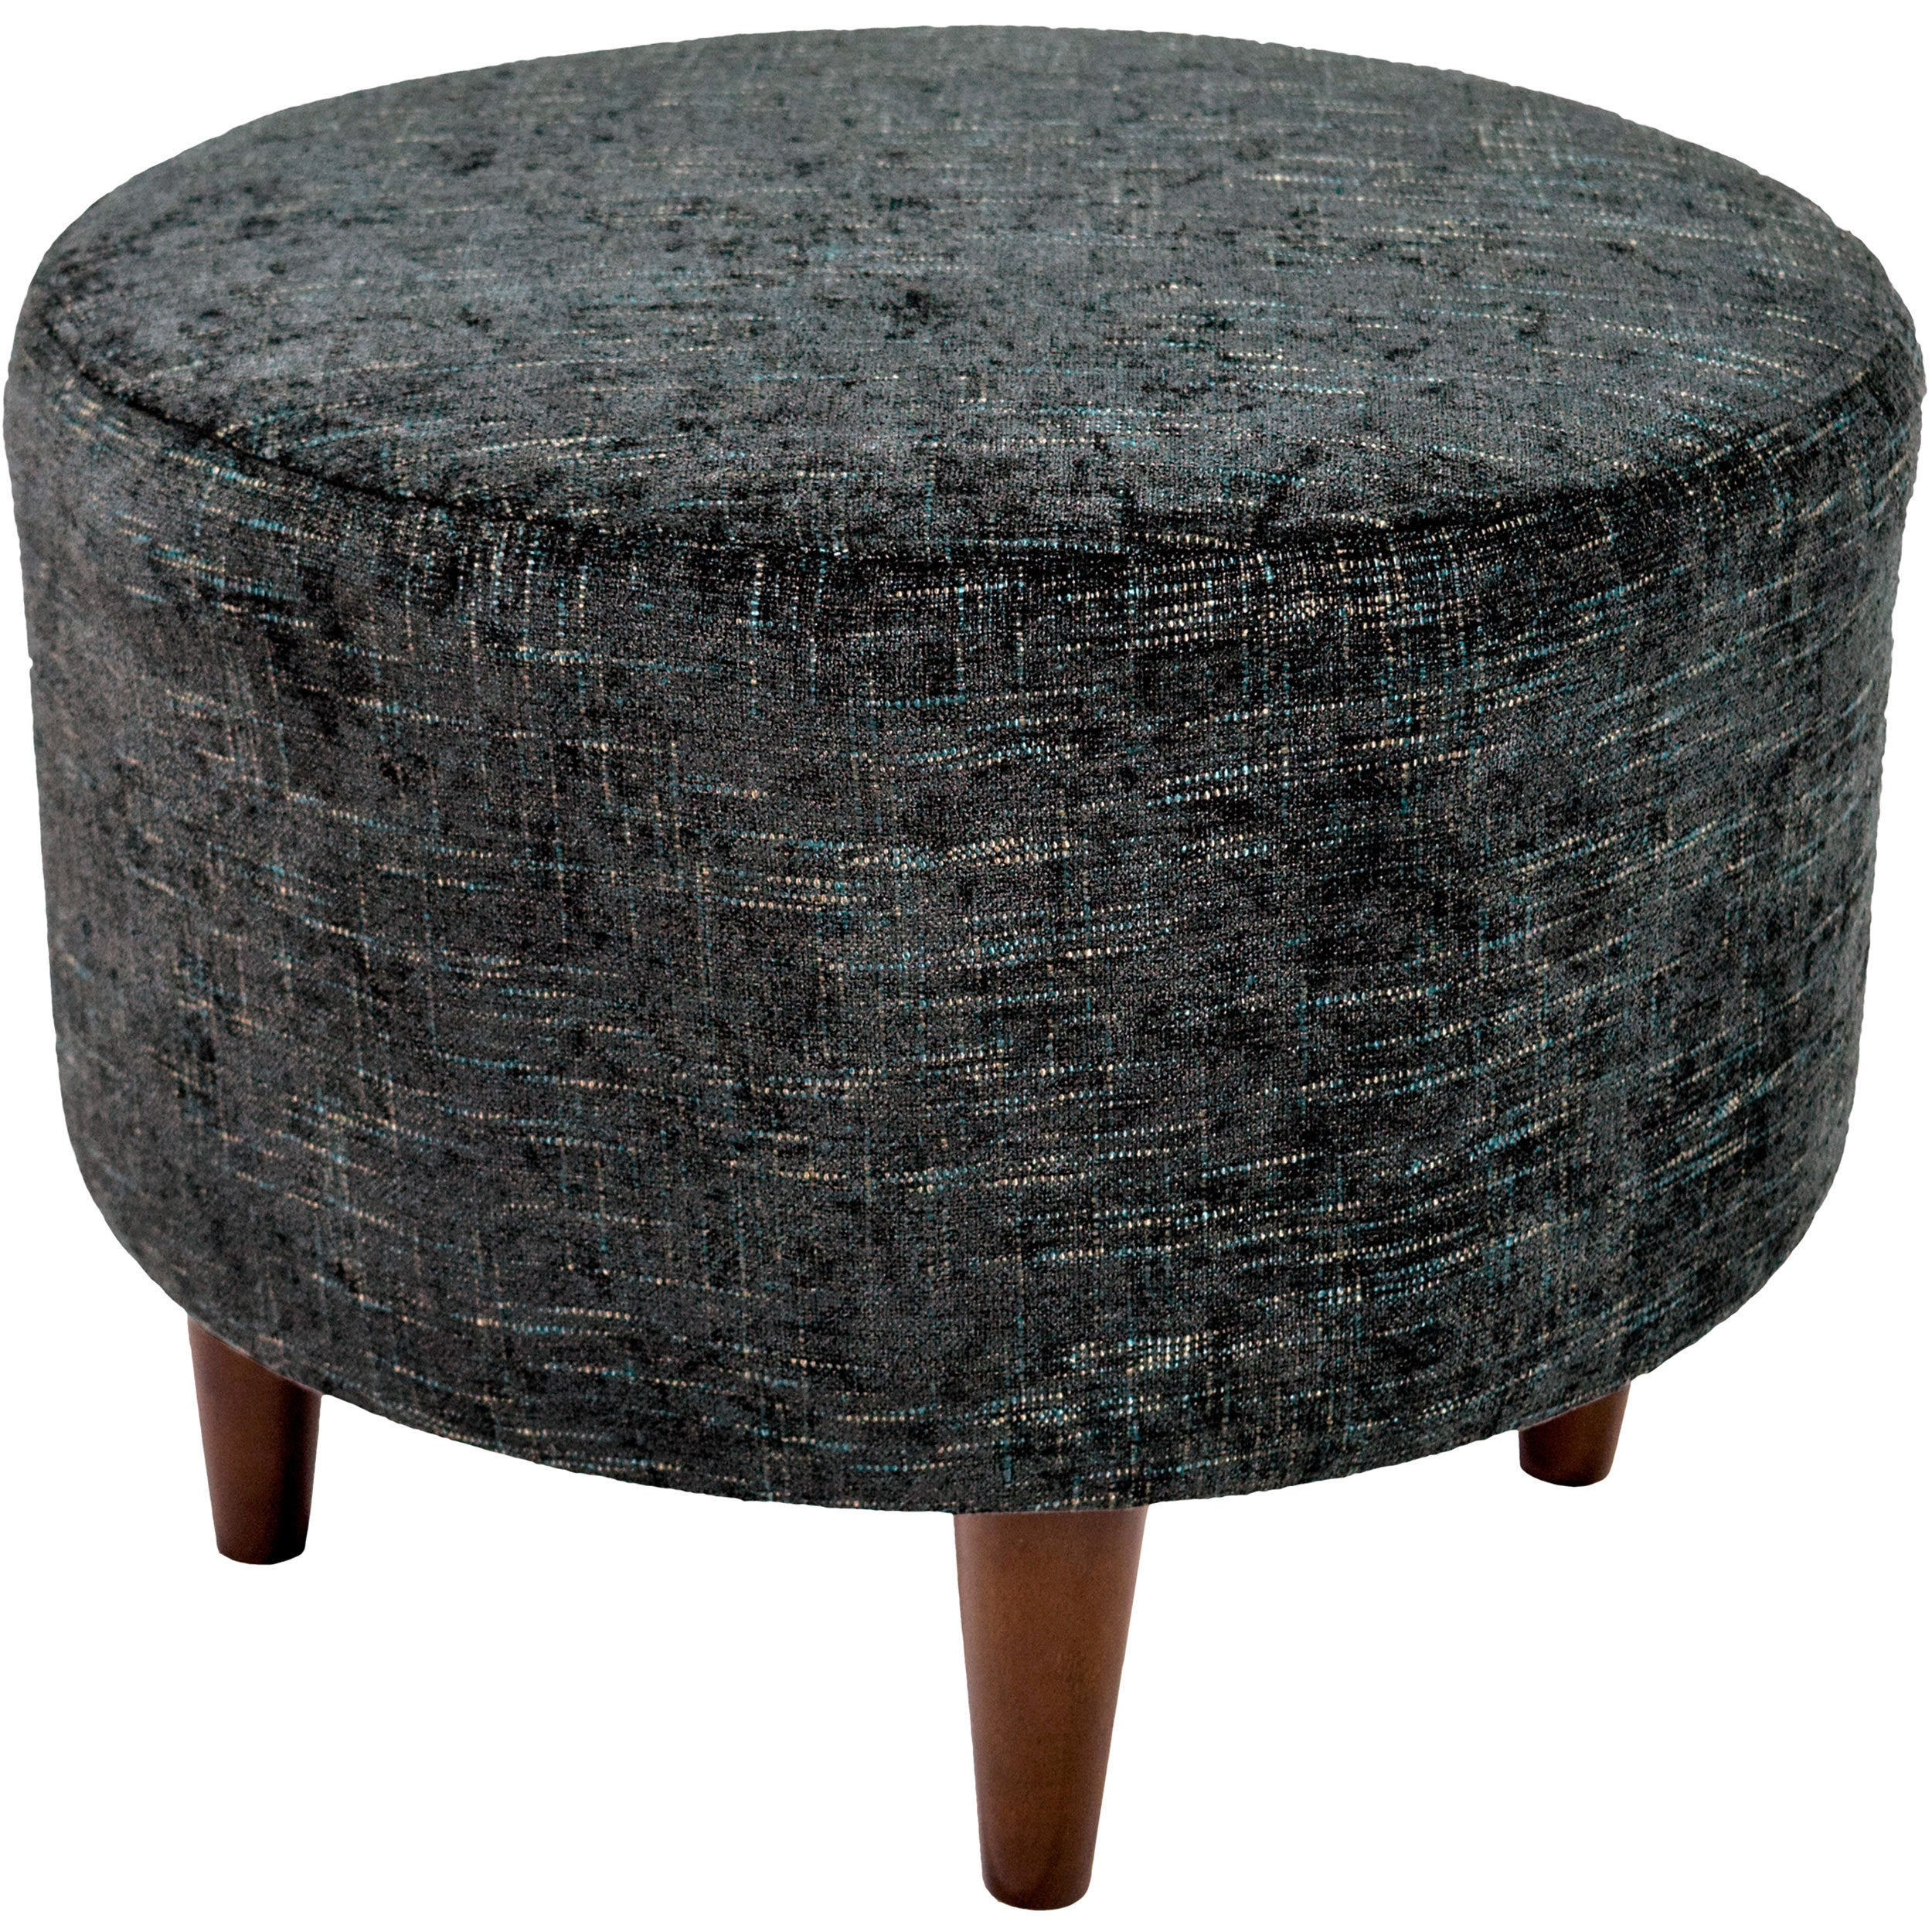 Shop sophia atlas round upholstered ottoman free shipping today overstock com 11458886